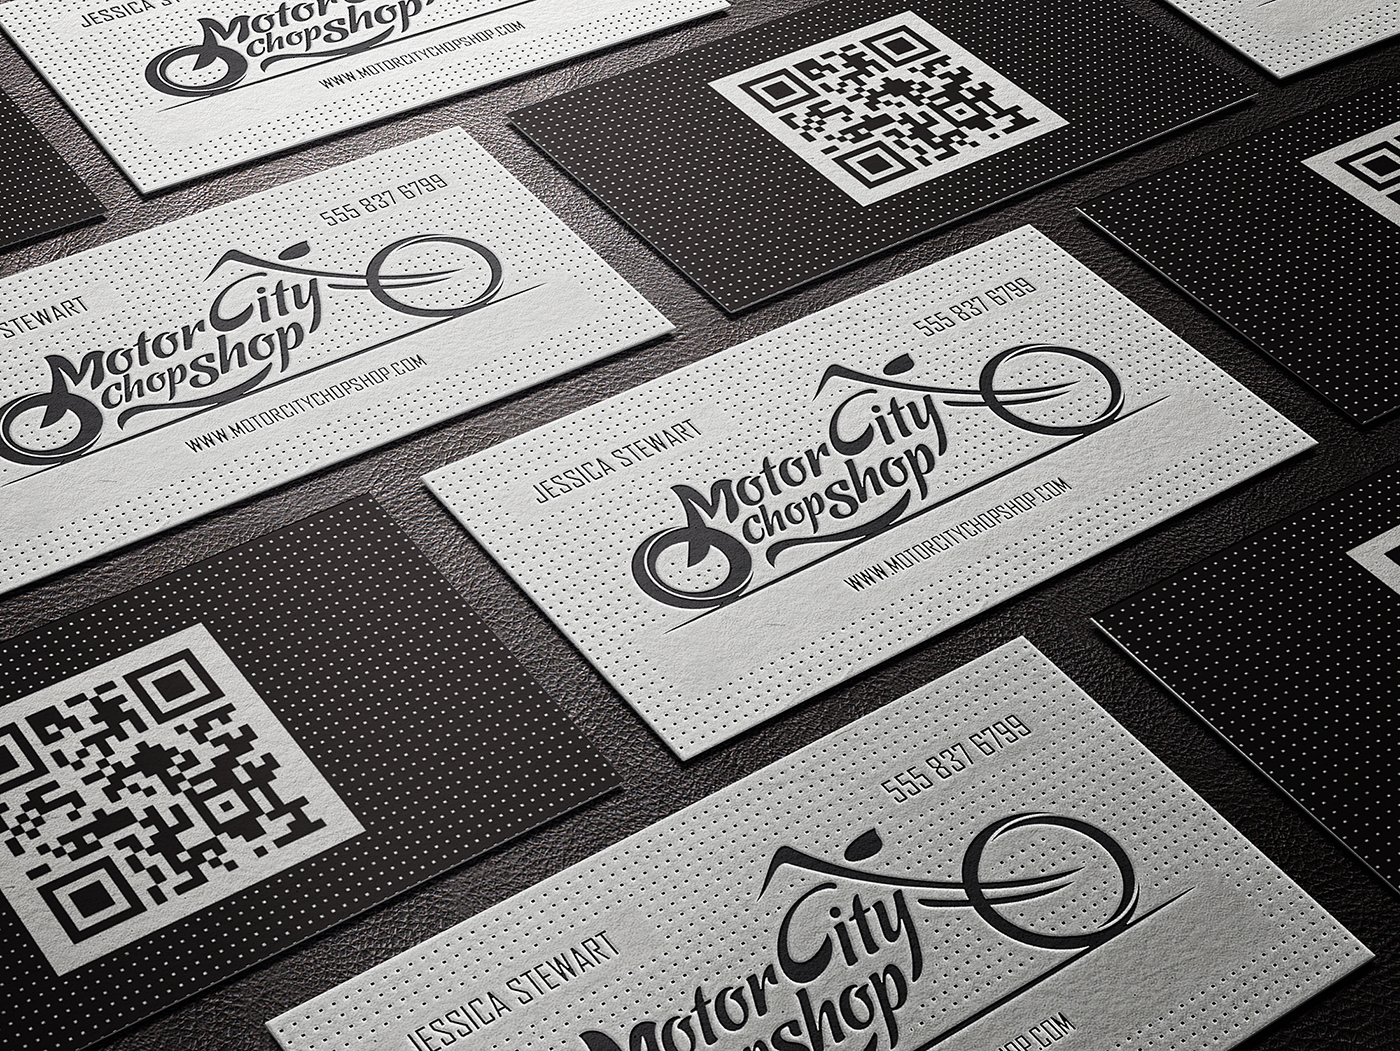 Motor City Chop Shop business cards